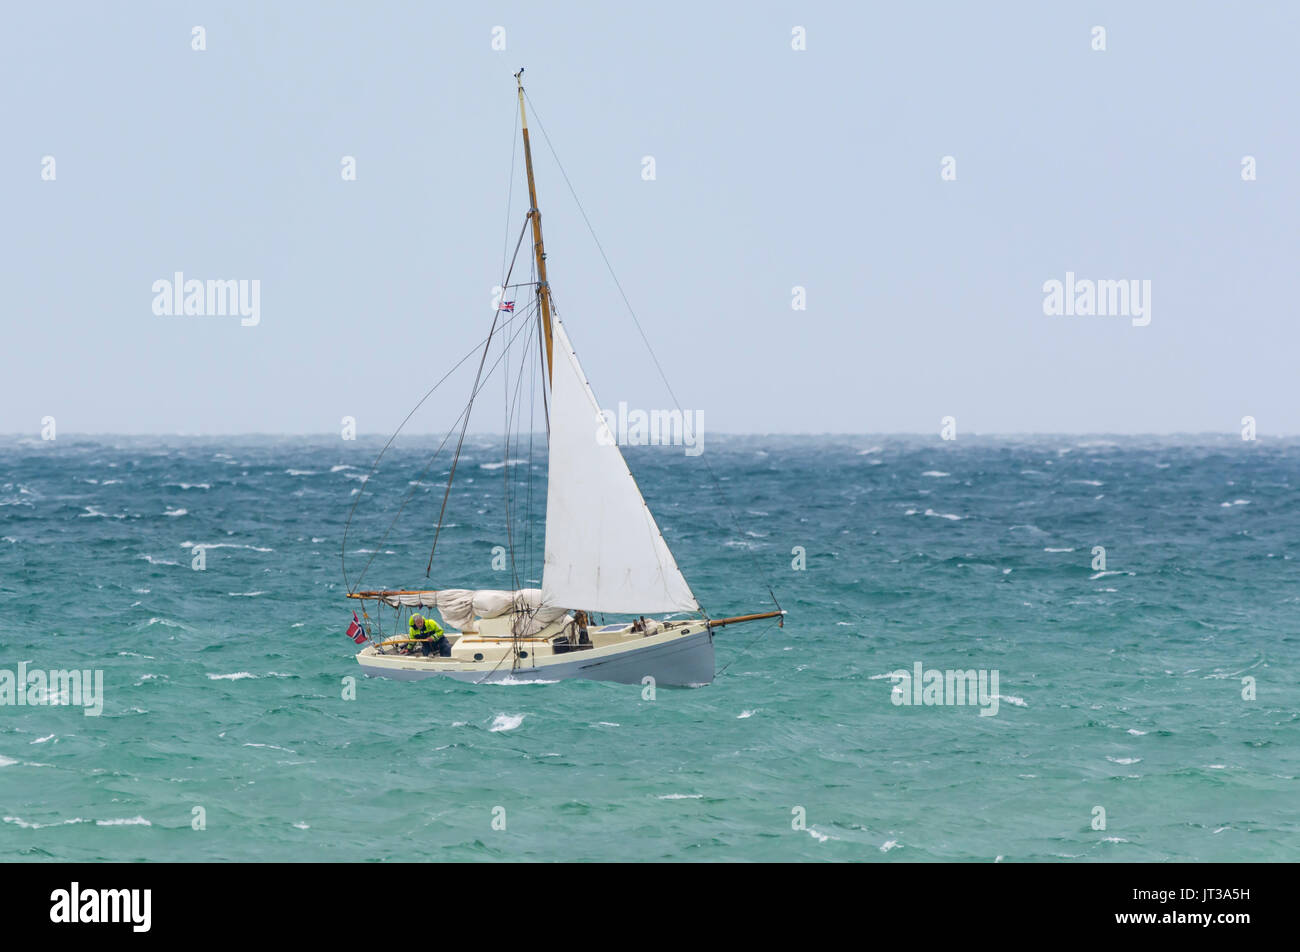 Small sailing boat on rough seas on a windy day. Small yachts. - Stock Image